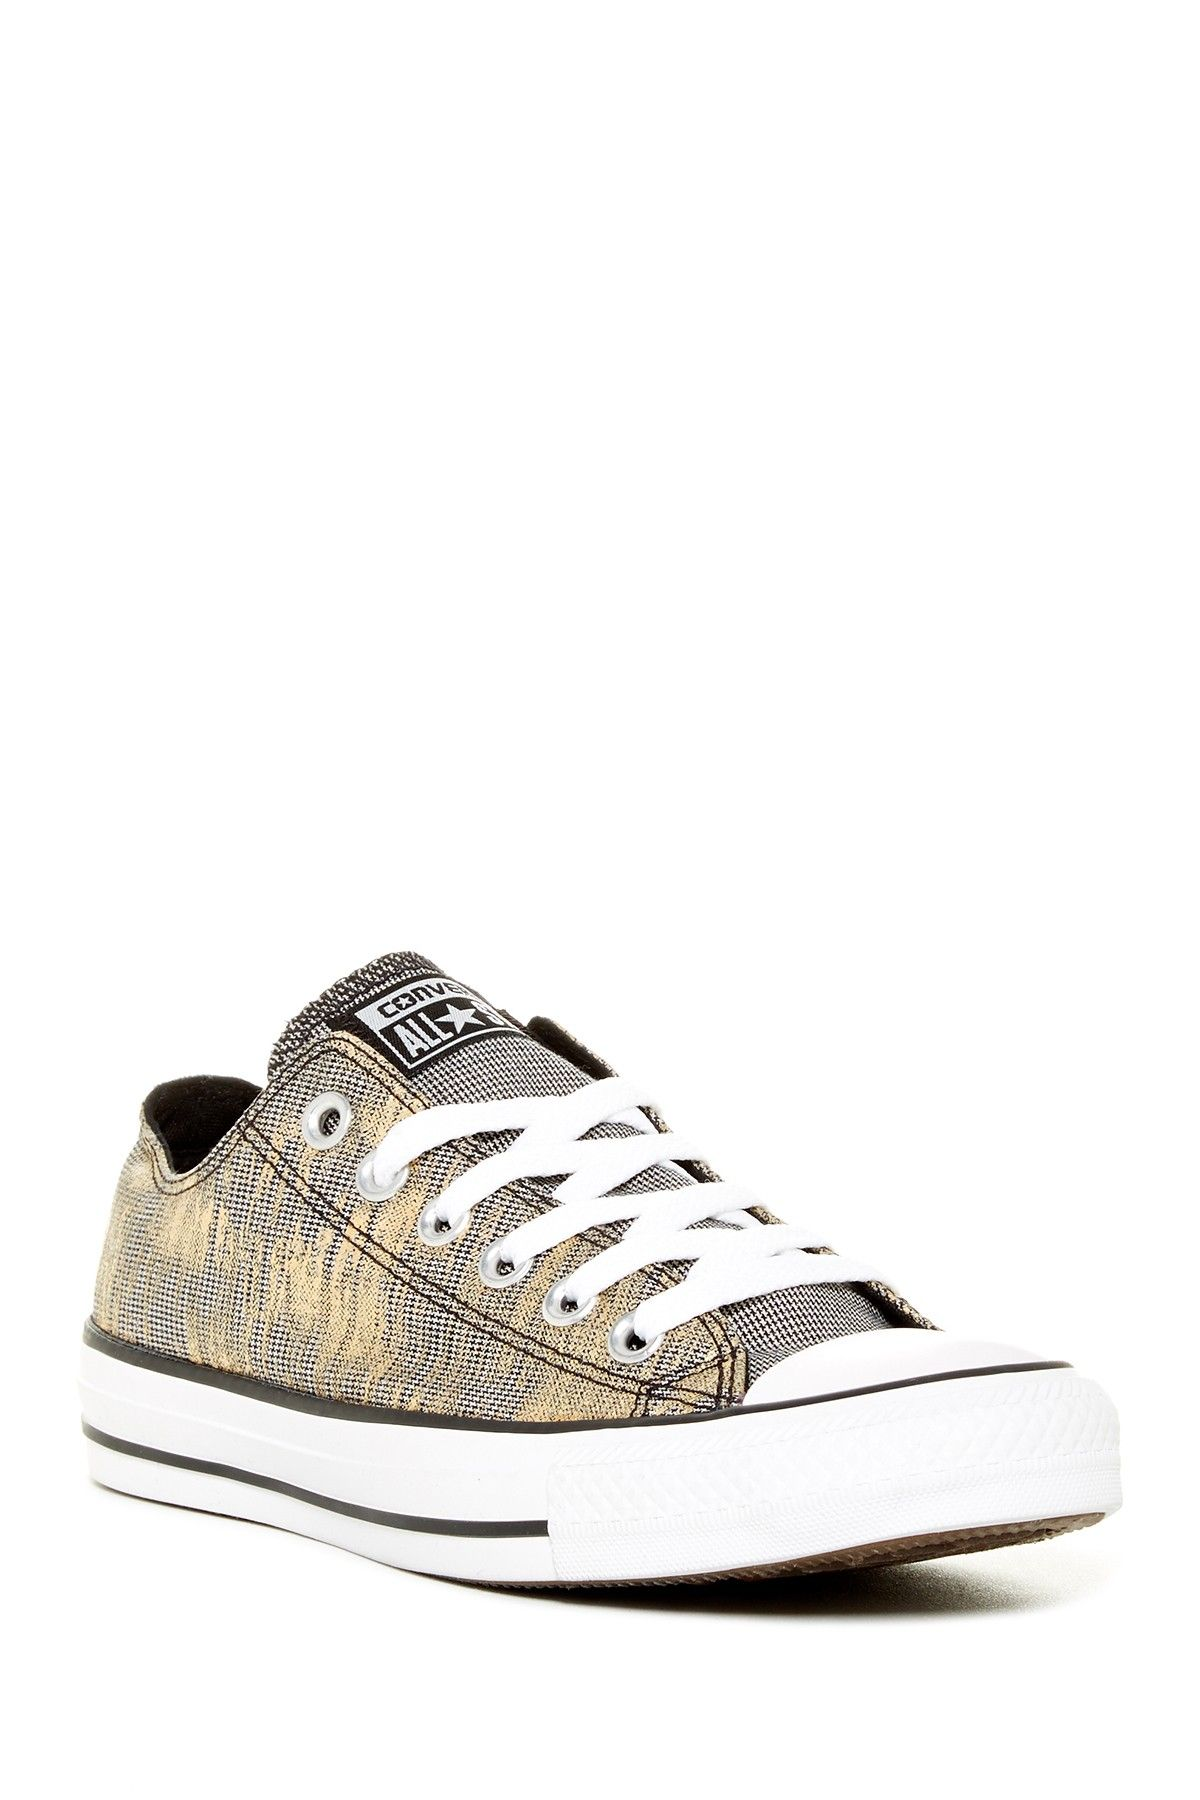 40583bc48820 Converse Chuck Taylor Metallic Brushed Houndstooth Sneaker by Converse on   HauteLook